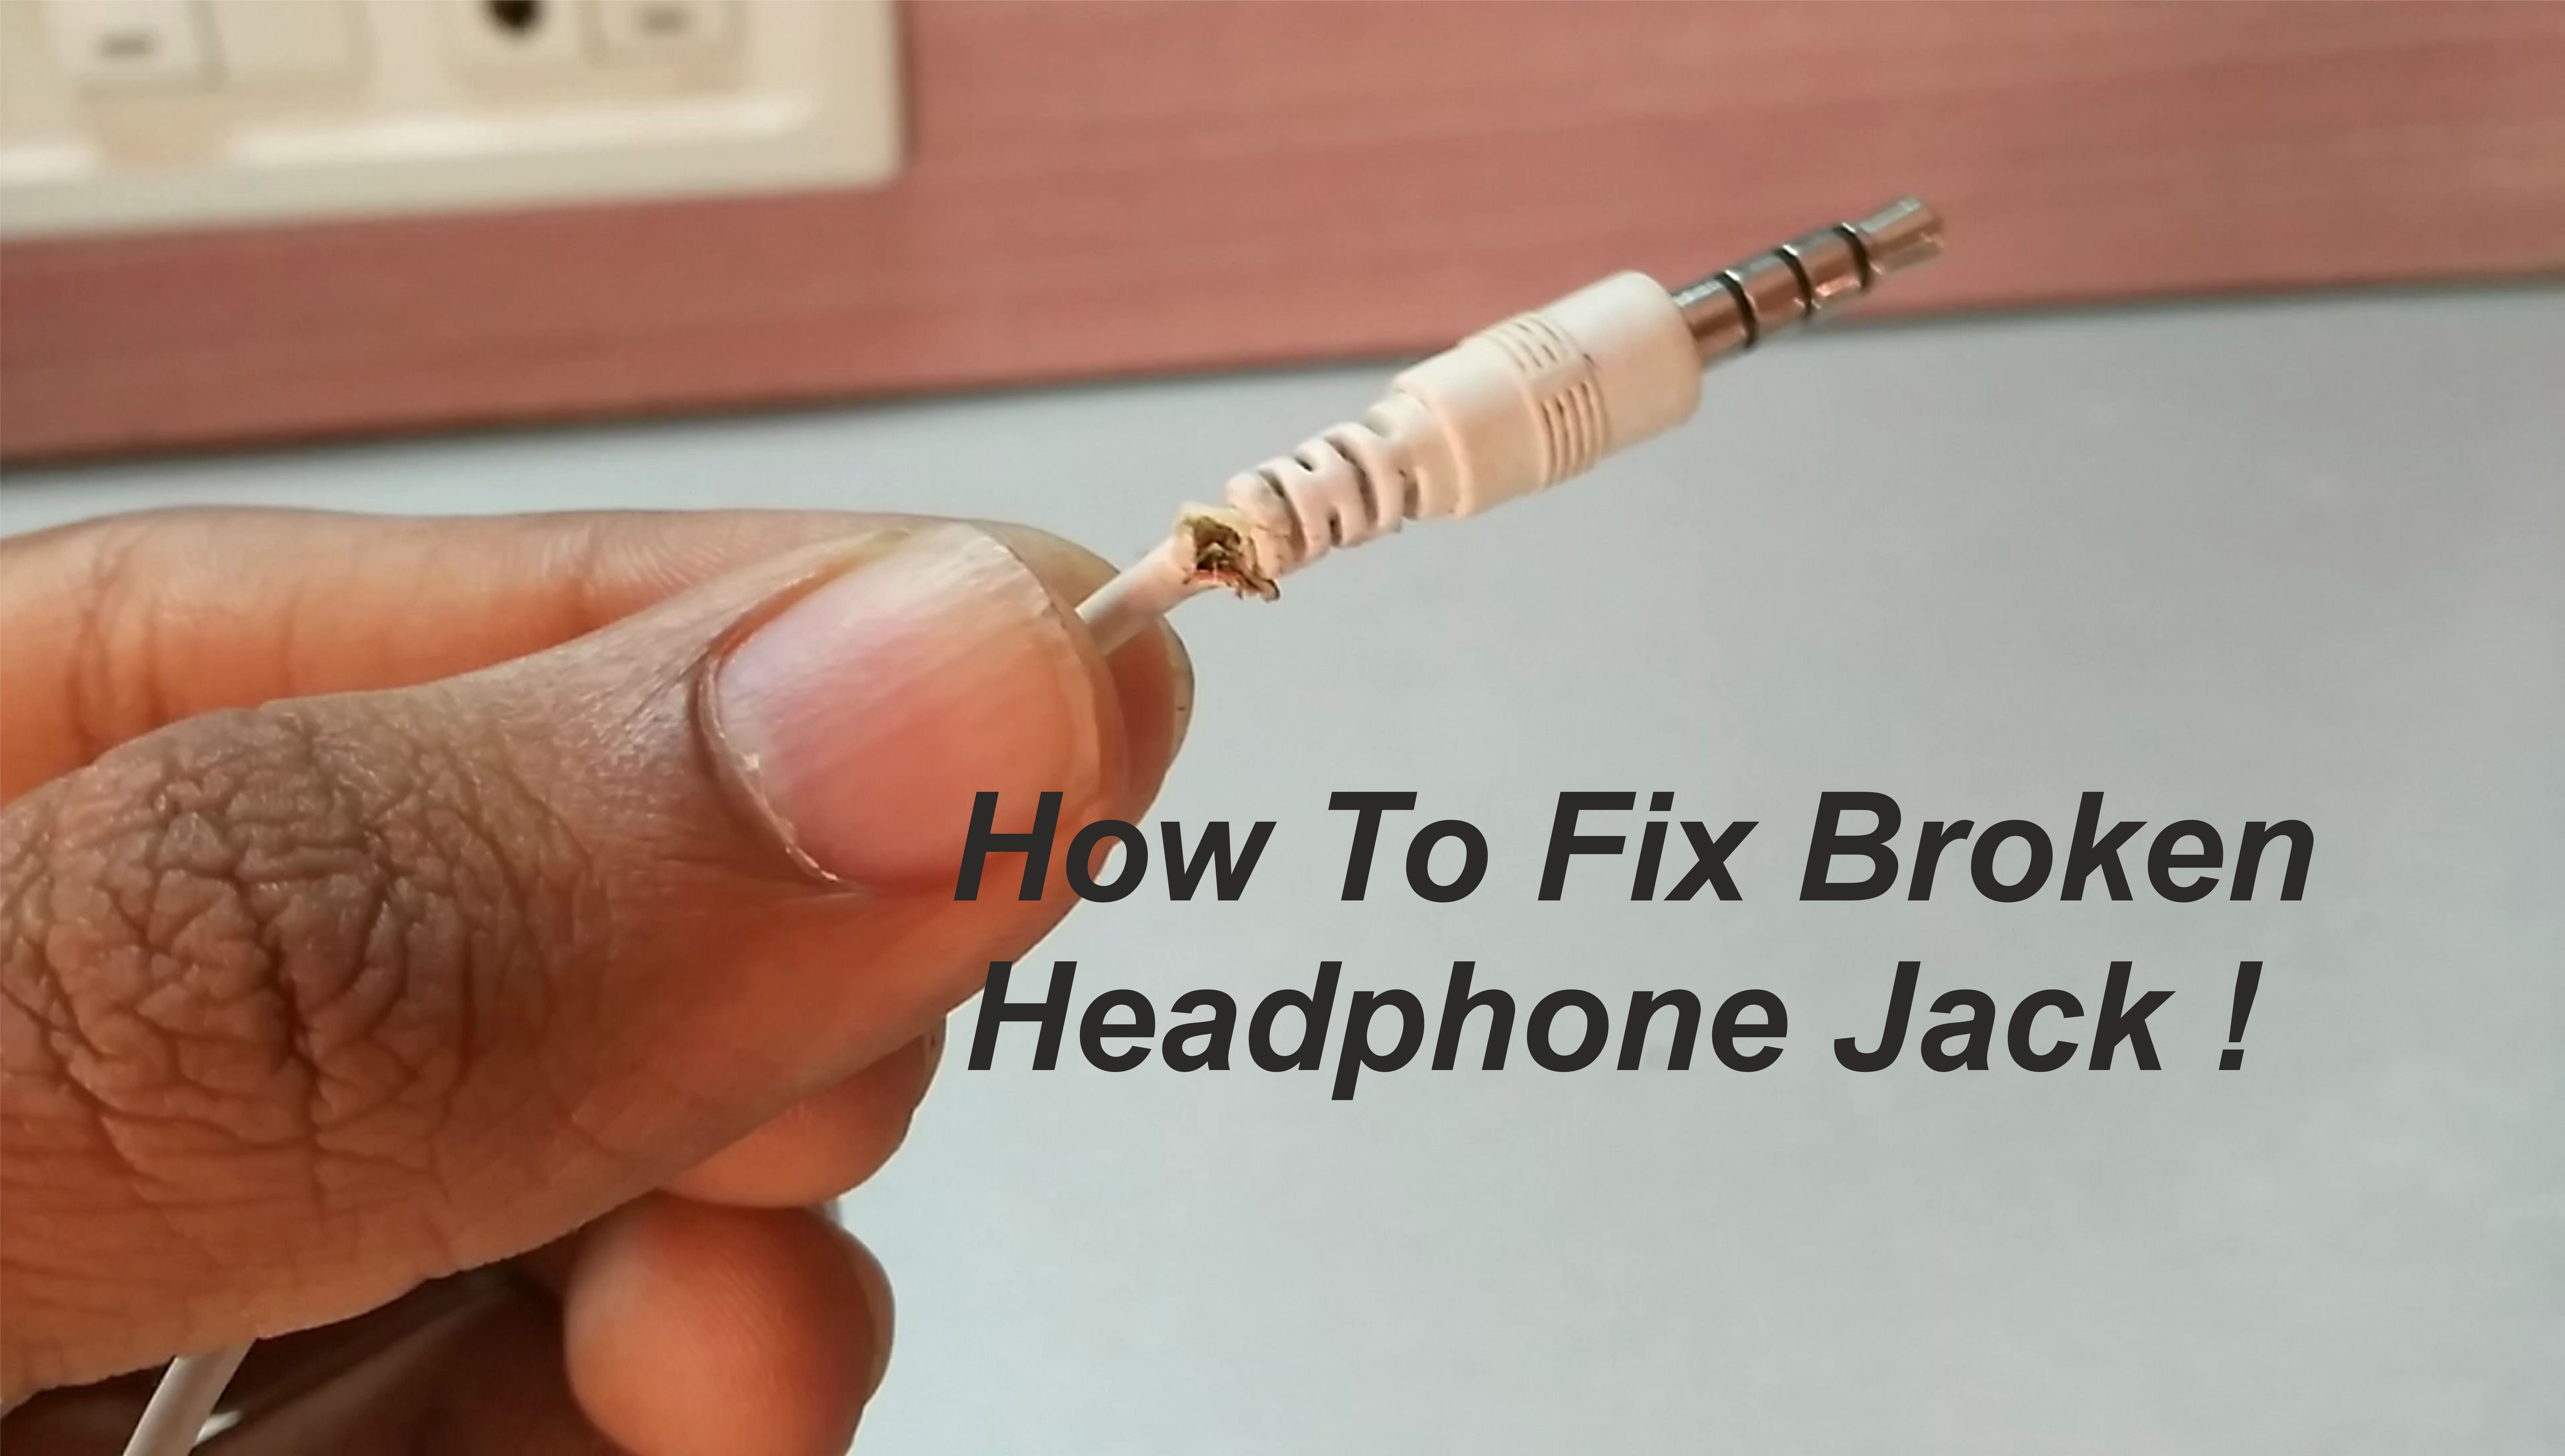 How To Fix Broken Headphone Jack 8 Steps With Pictures Instructables